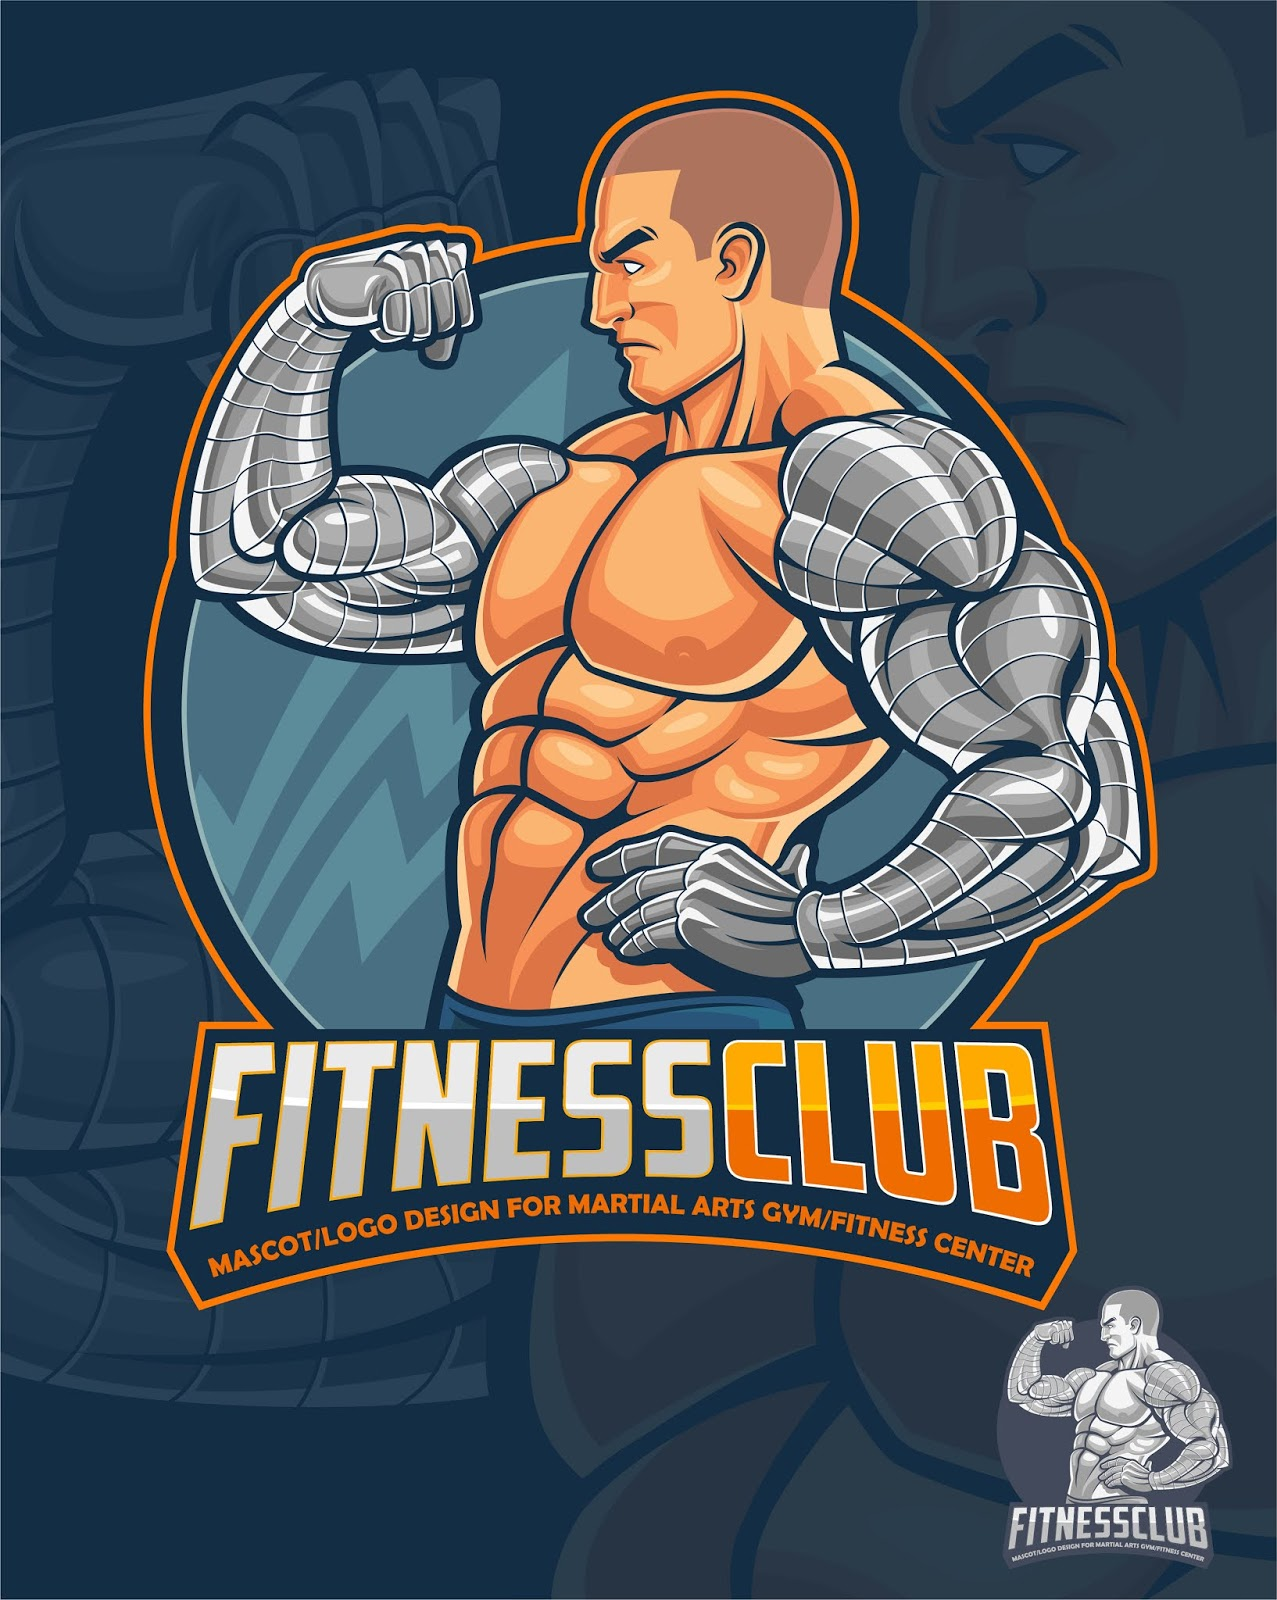 Fitness Club Mascot Logo Free Download Vector CDR, AI, EPS and PNG Formats